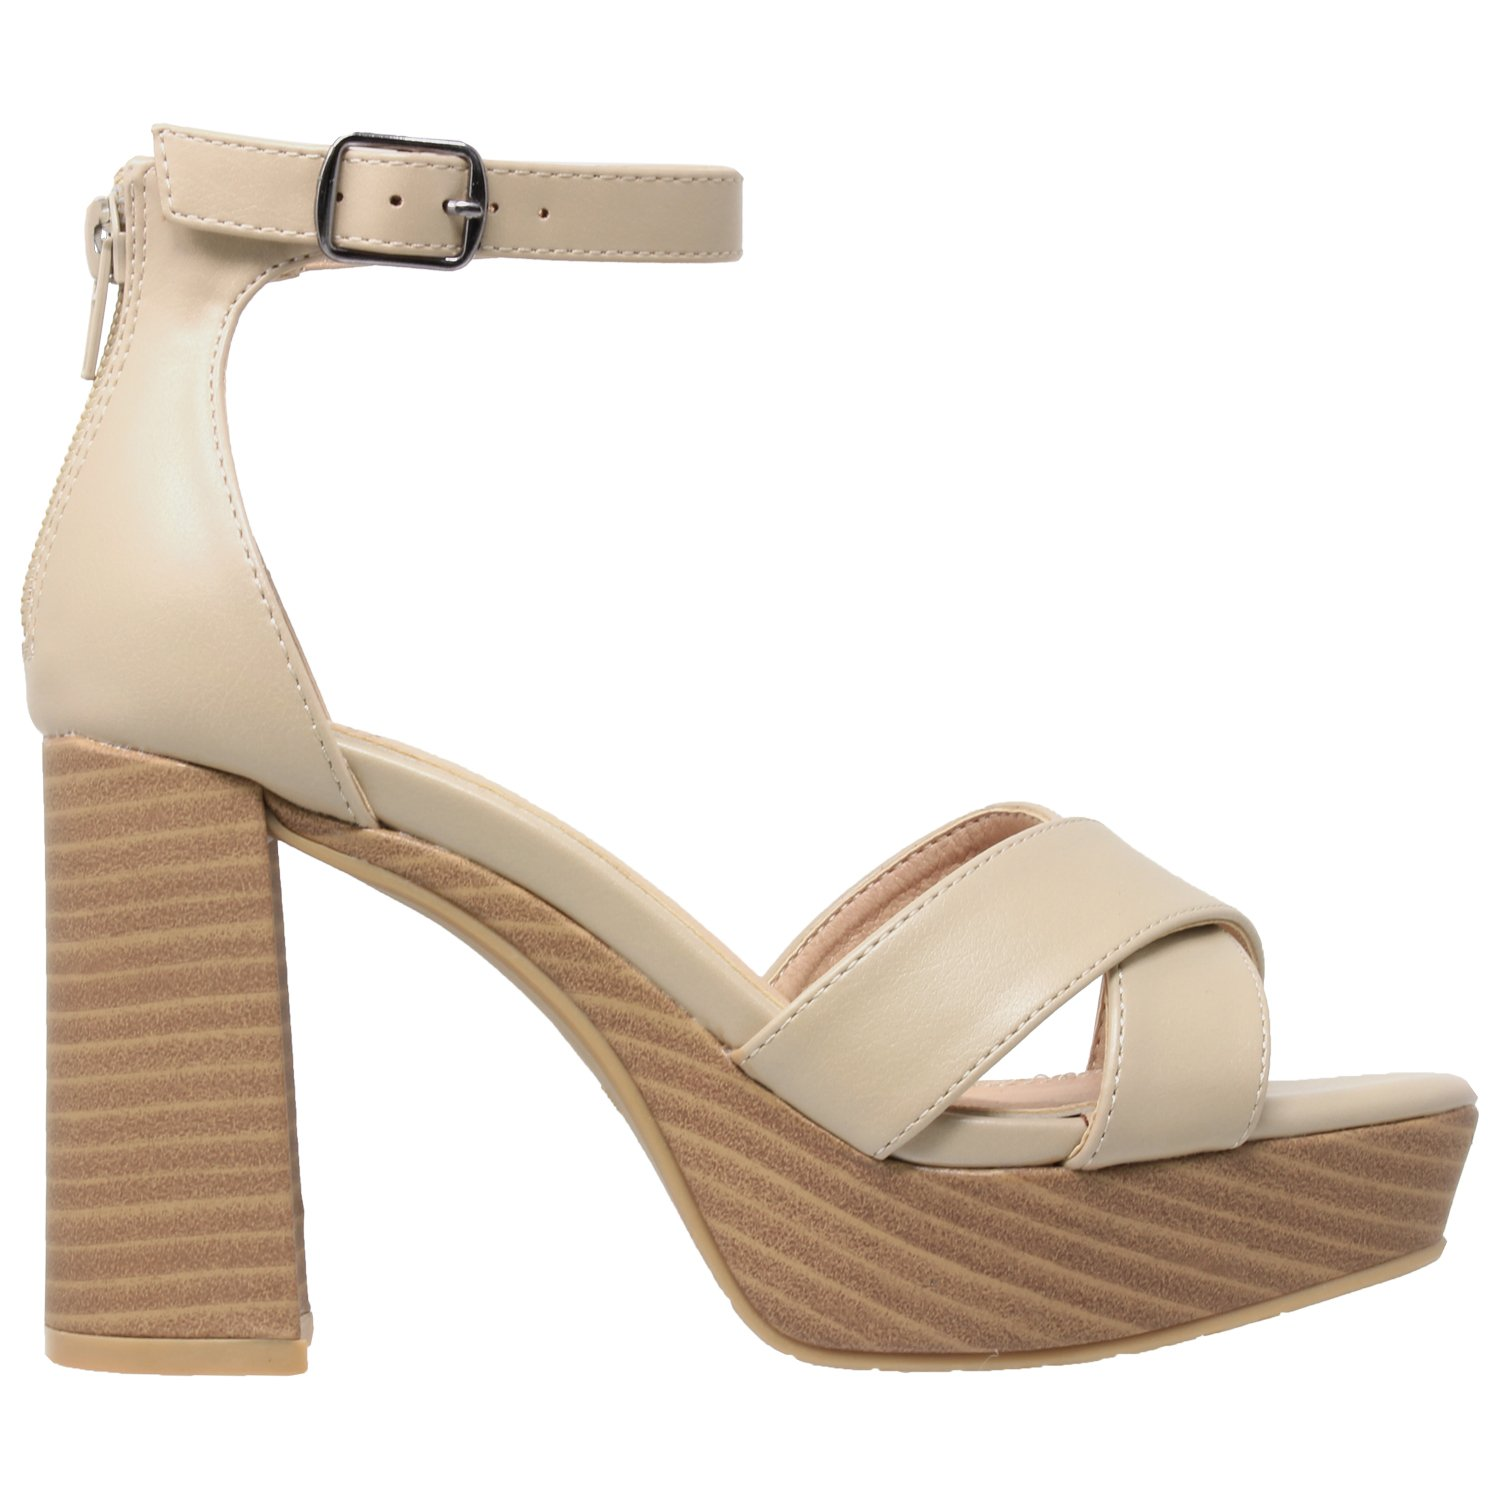 SOBEYO Womens Platform Sandals Open Toe Ankle Strap Chunky Block Heel Shoes B07B2H6RG6 6 B(M) US|Taupe Pu Leather